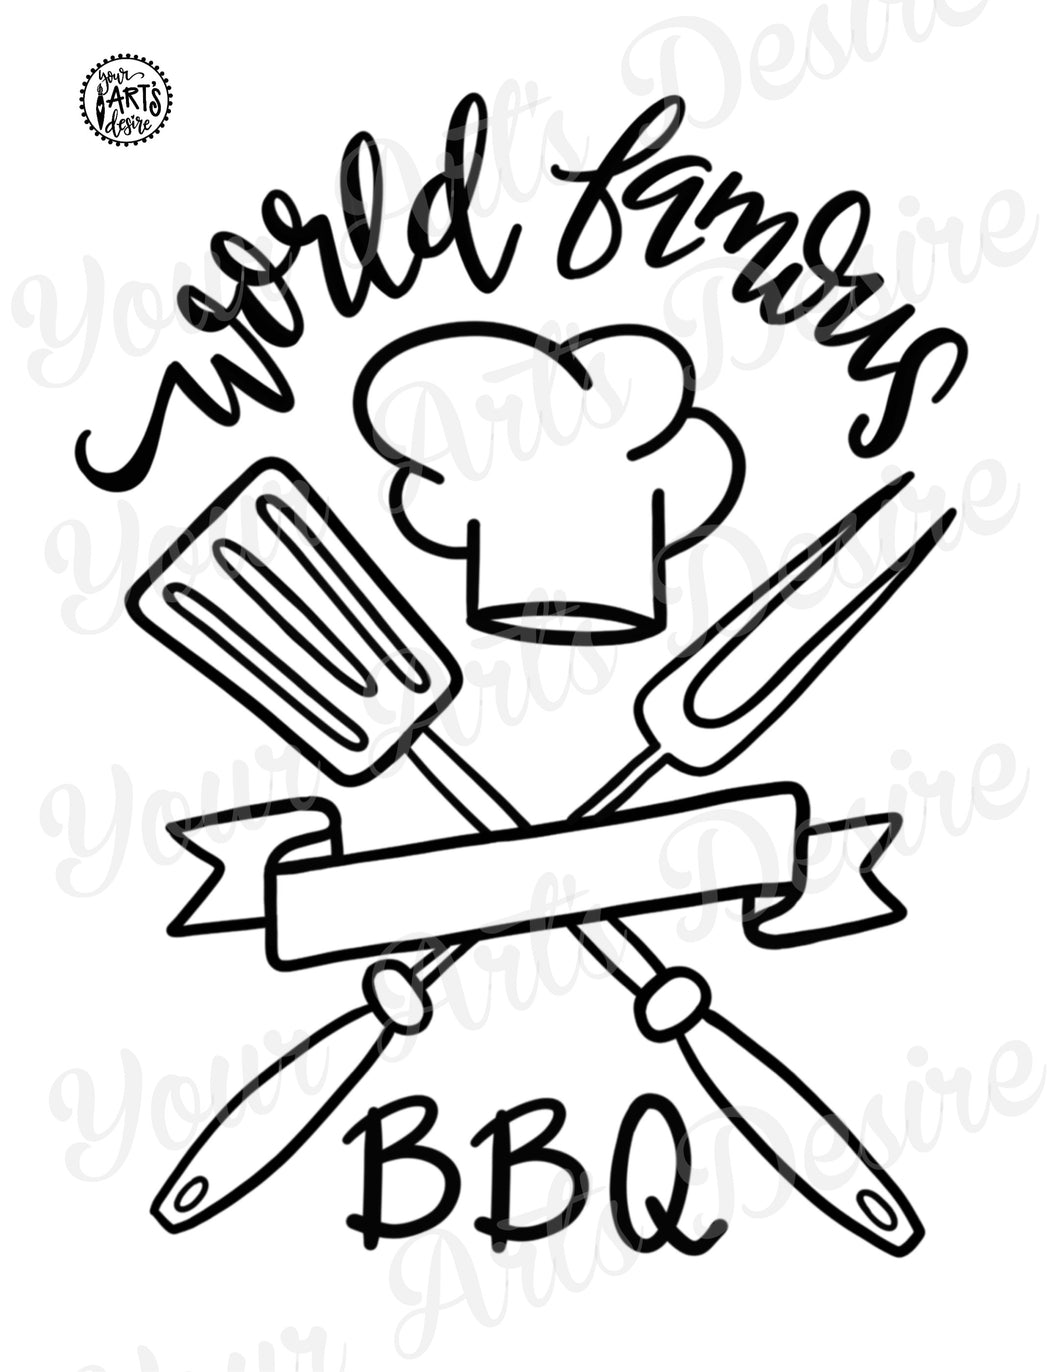 Coloring Book - World Famous BBQ